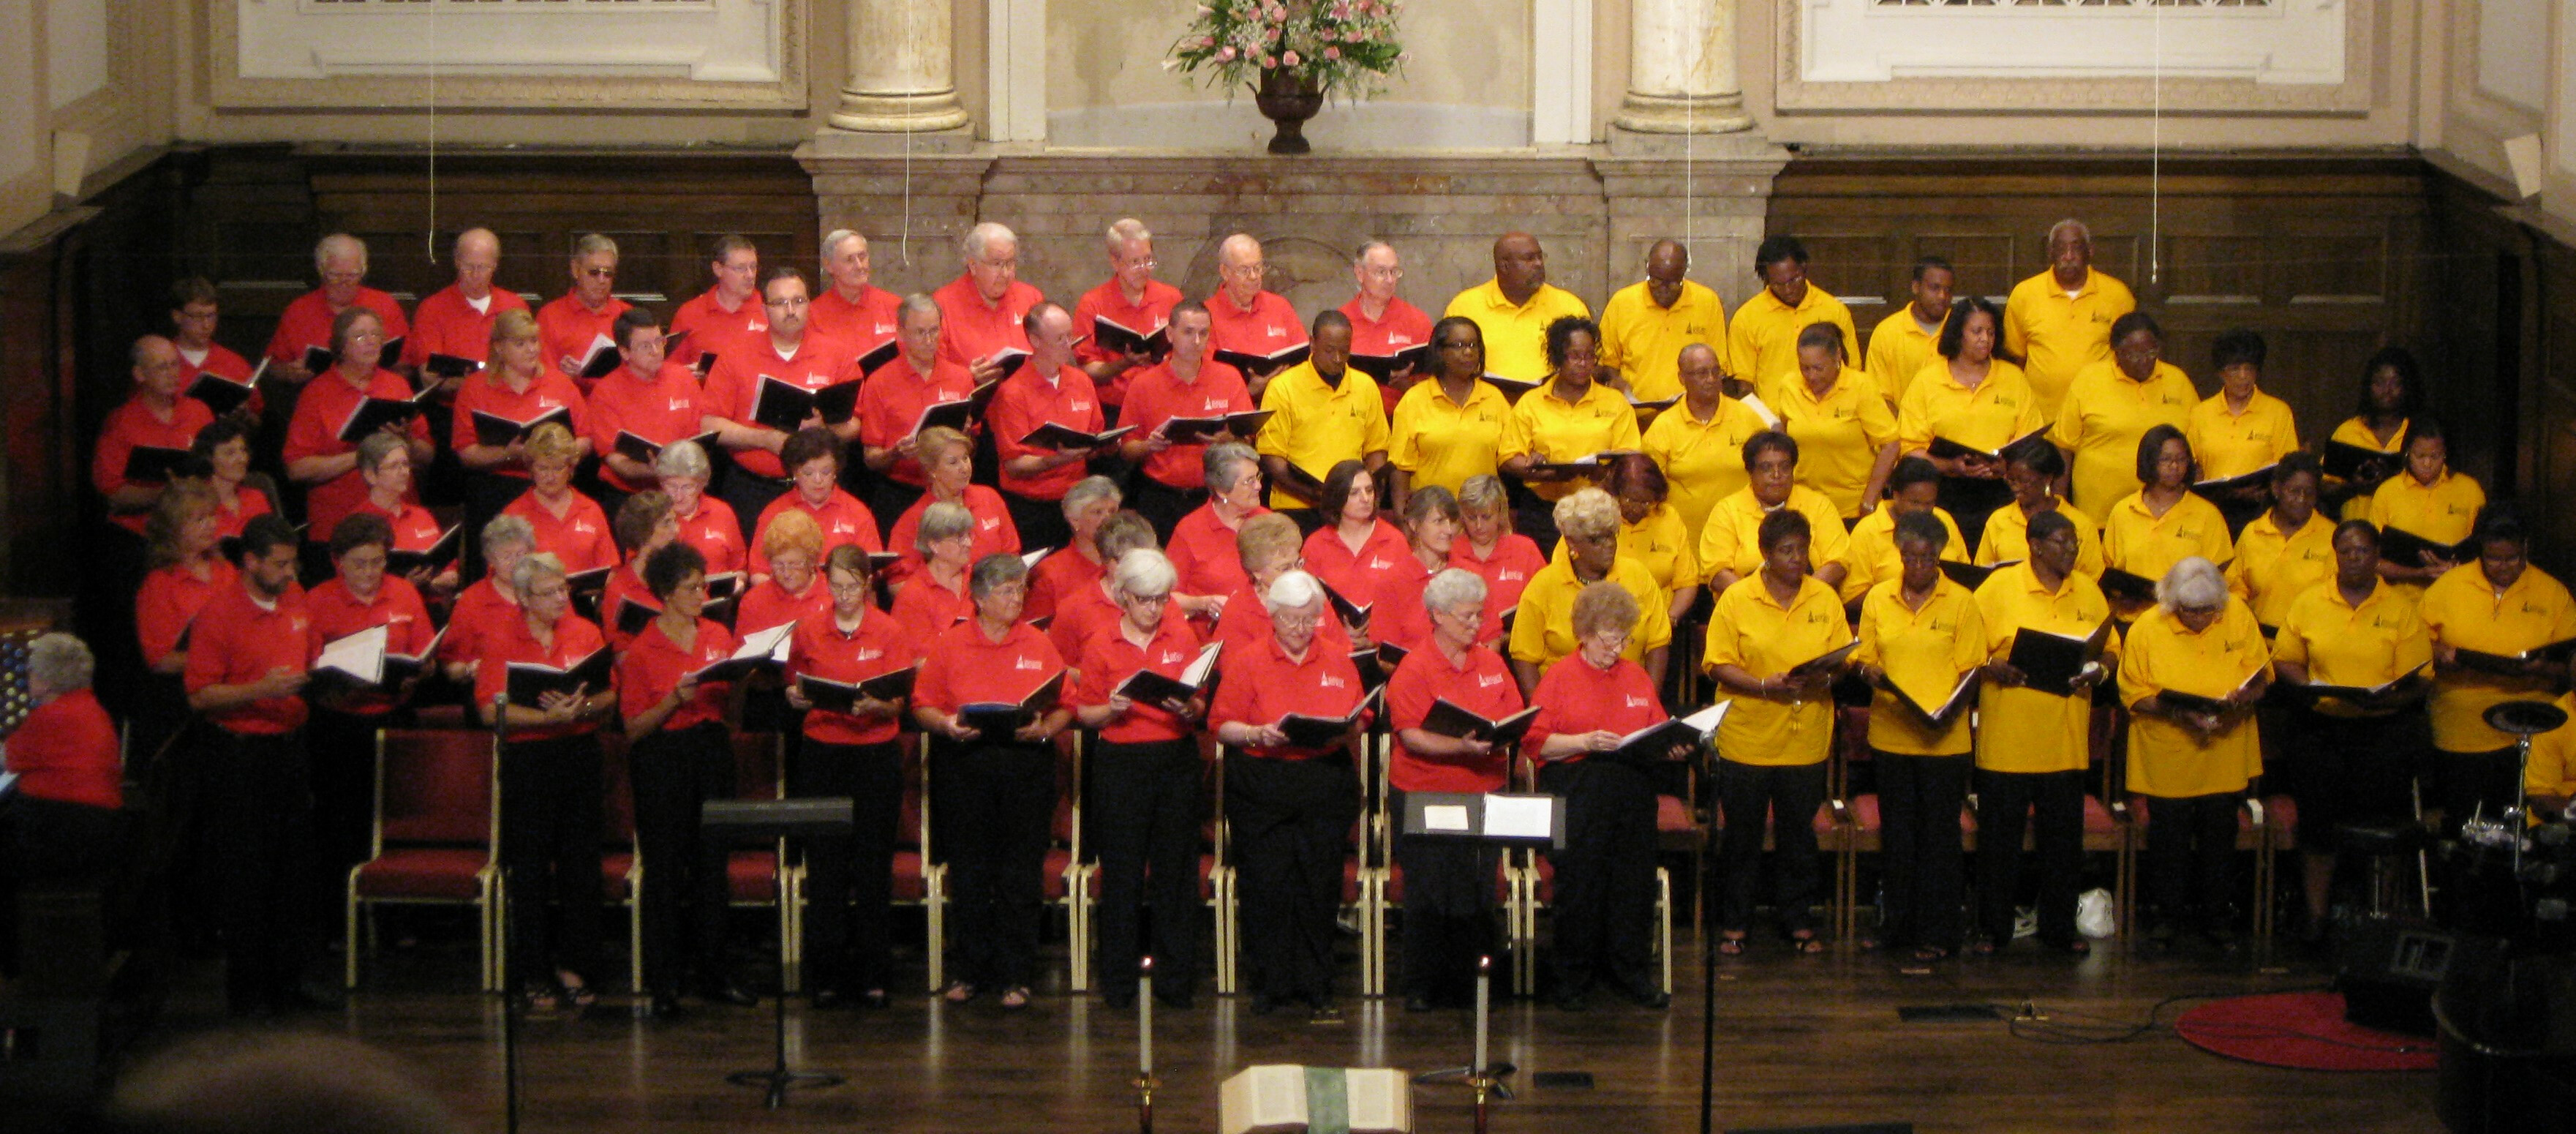 First Baptist and Mt. Zion Choirs together at Ev'ry Time I Feel the Spirit